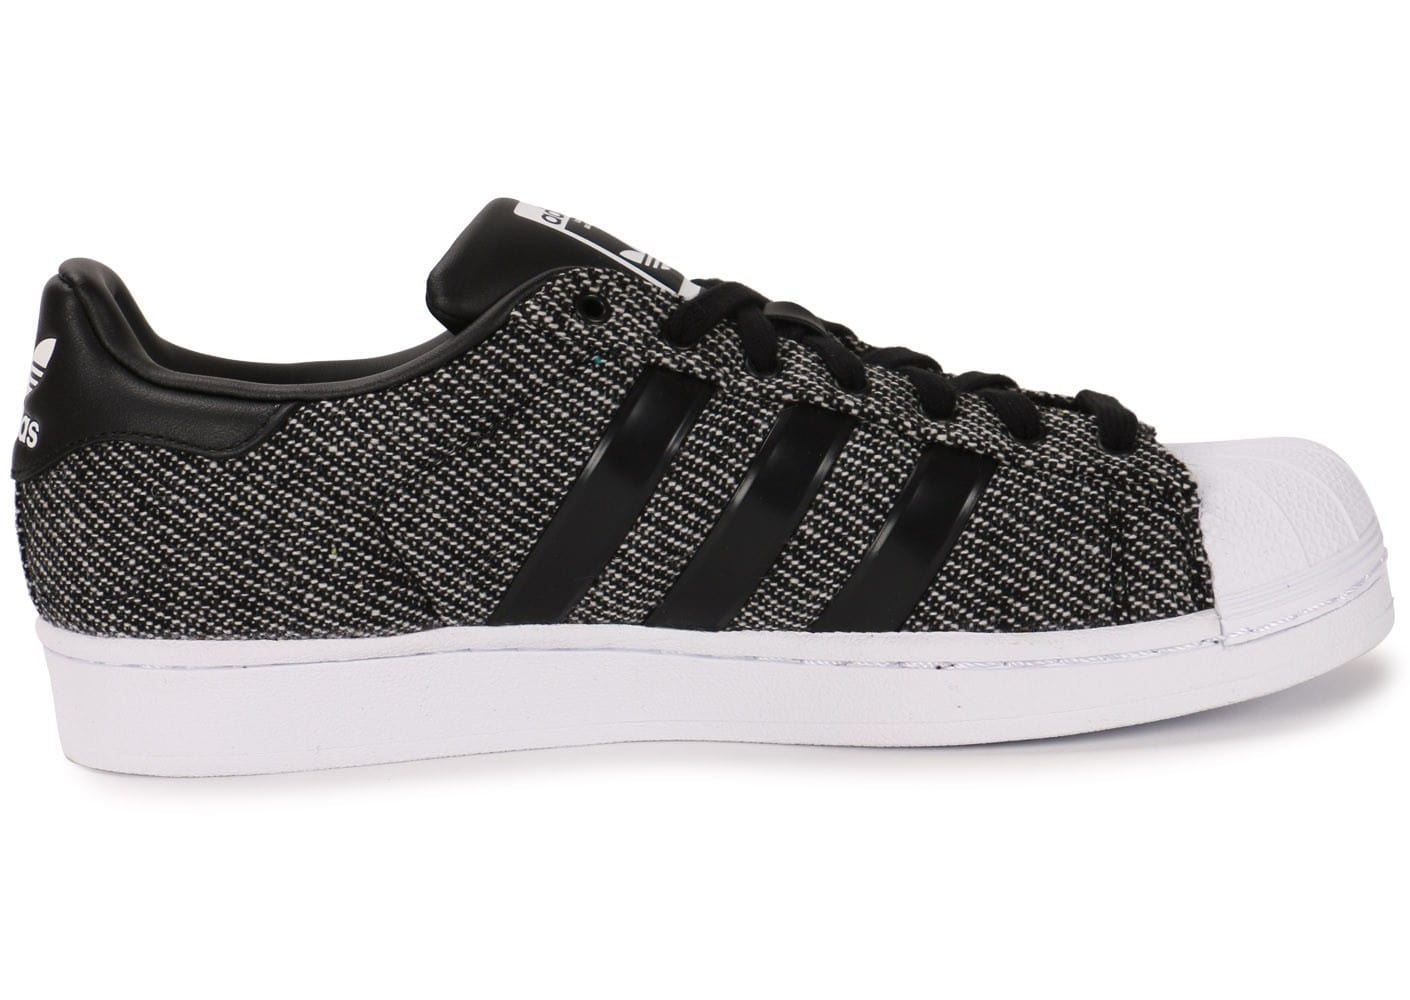 adidas - baskets superstar winterized noir blanc d'adidas